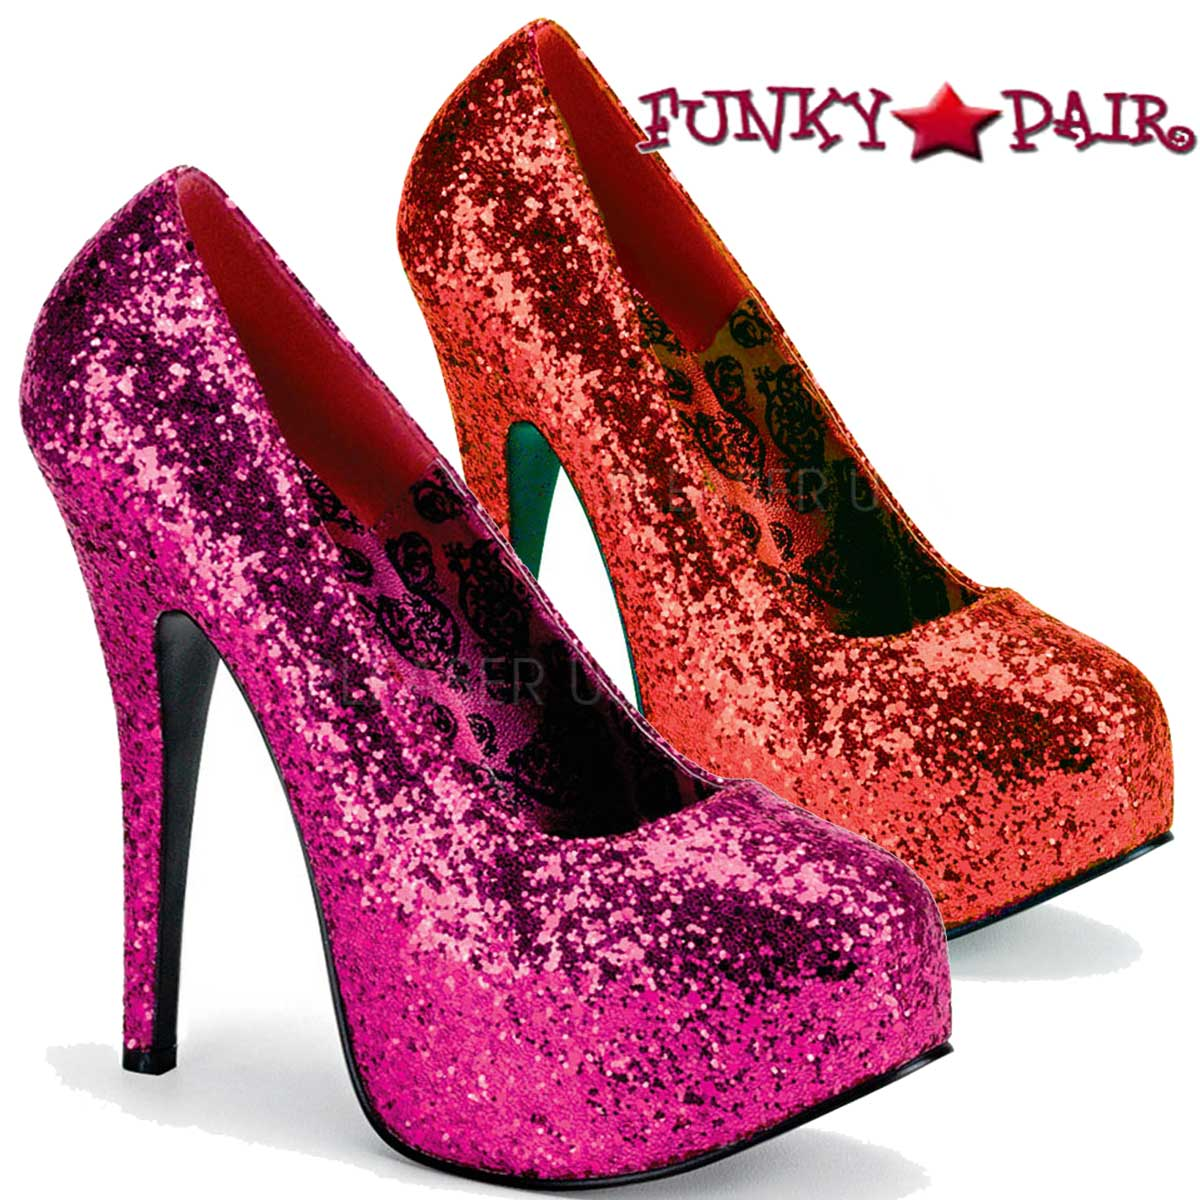 5b4290c288b Home · Sexy Shoes · Pink Label · TEEZE-06GW